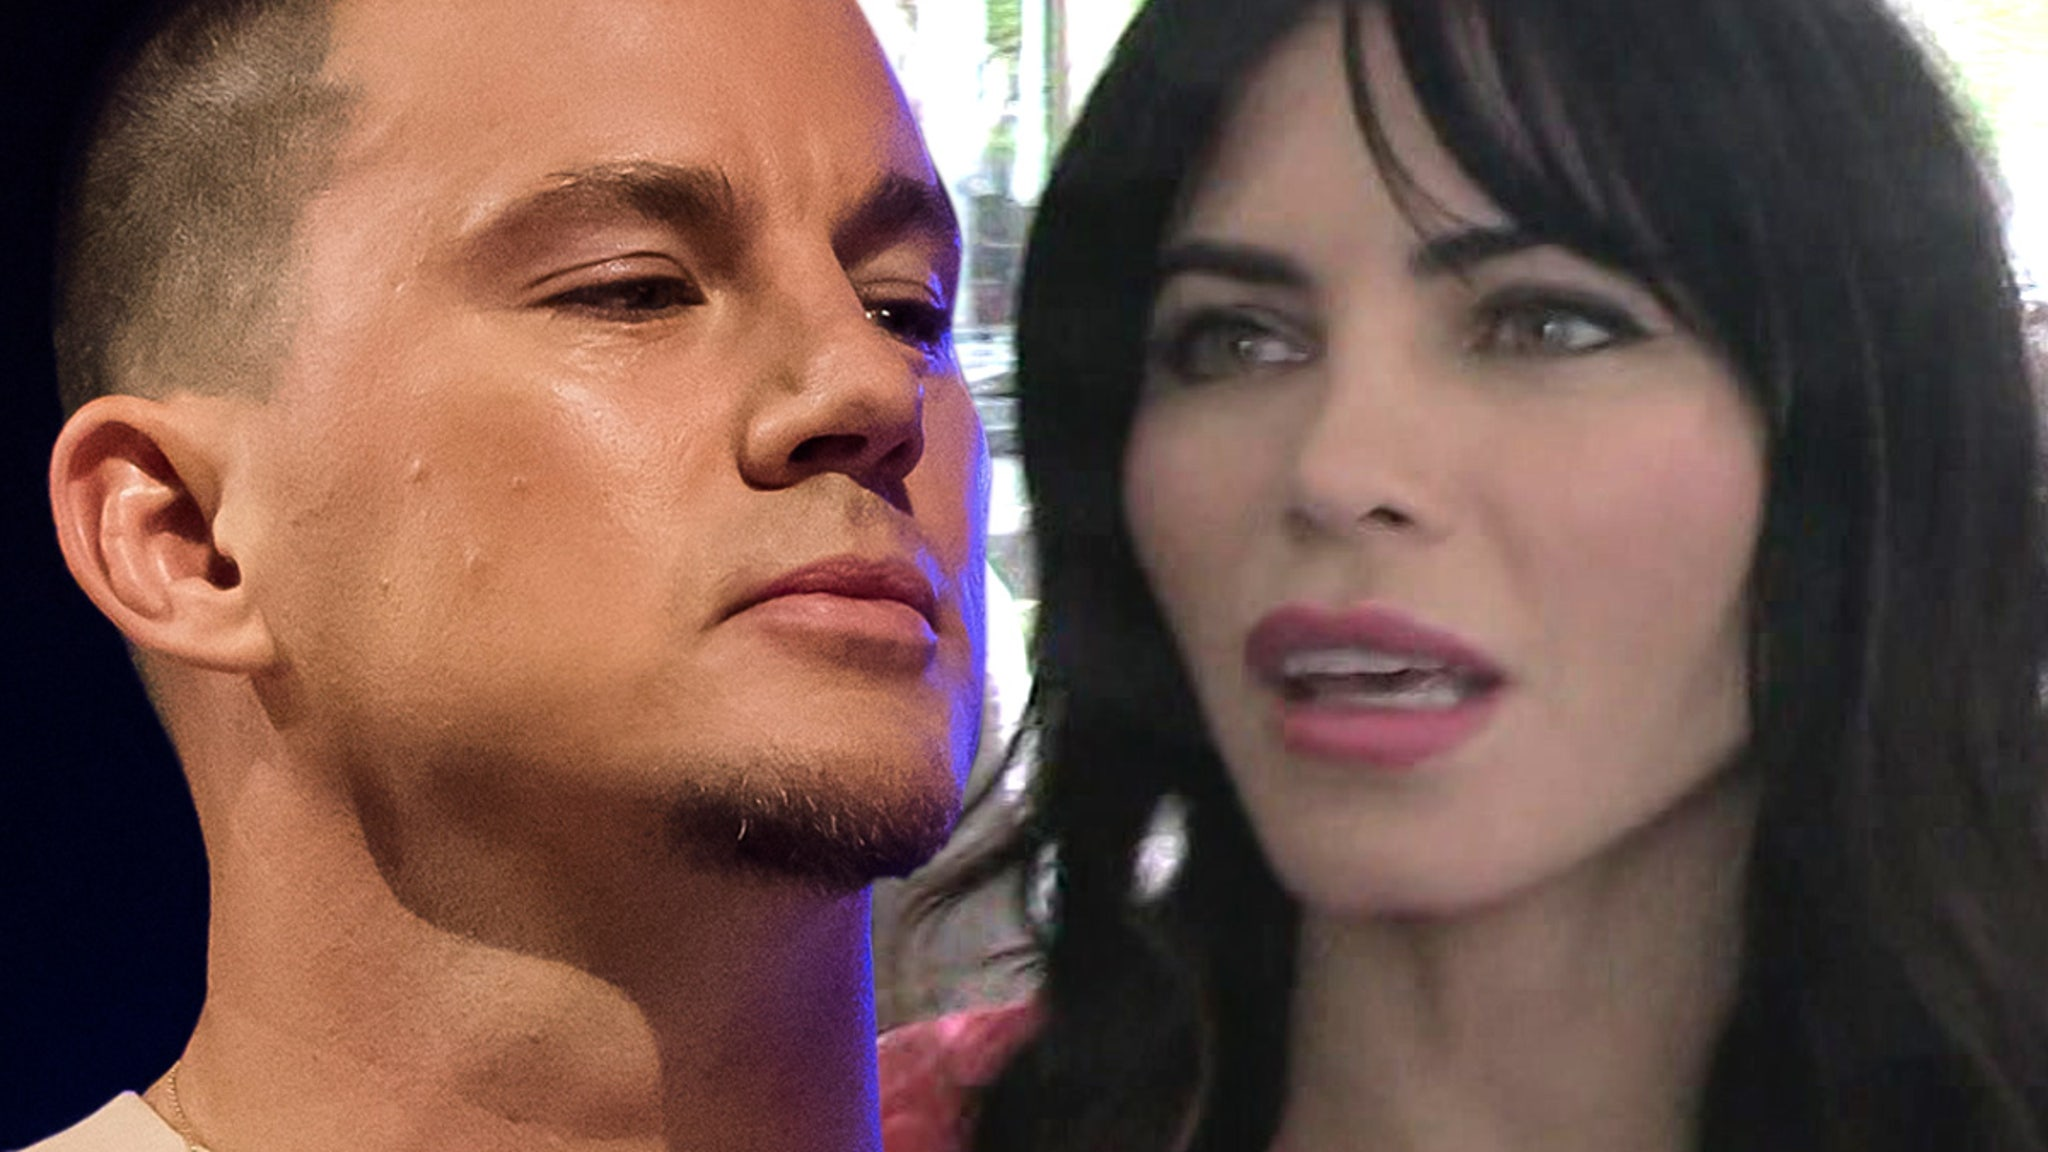 Channing Tatum Tested for COVID-19 Post-Bday, Ensures Daughter's Safety